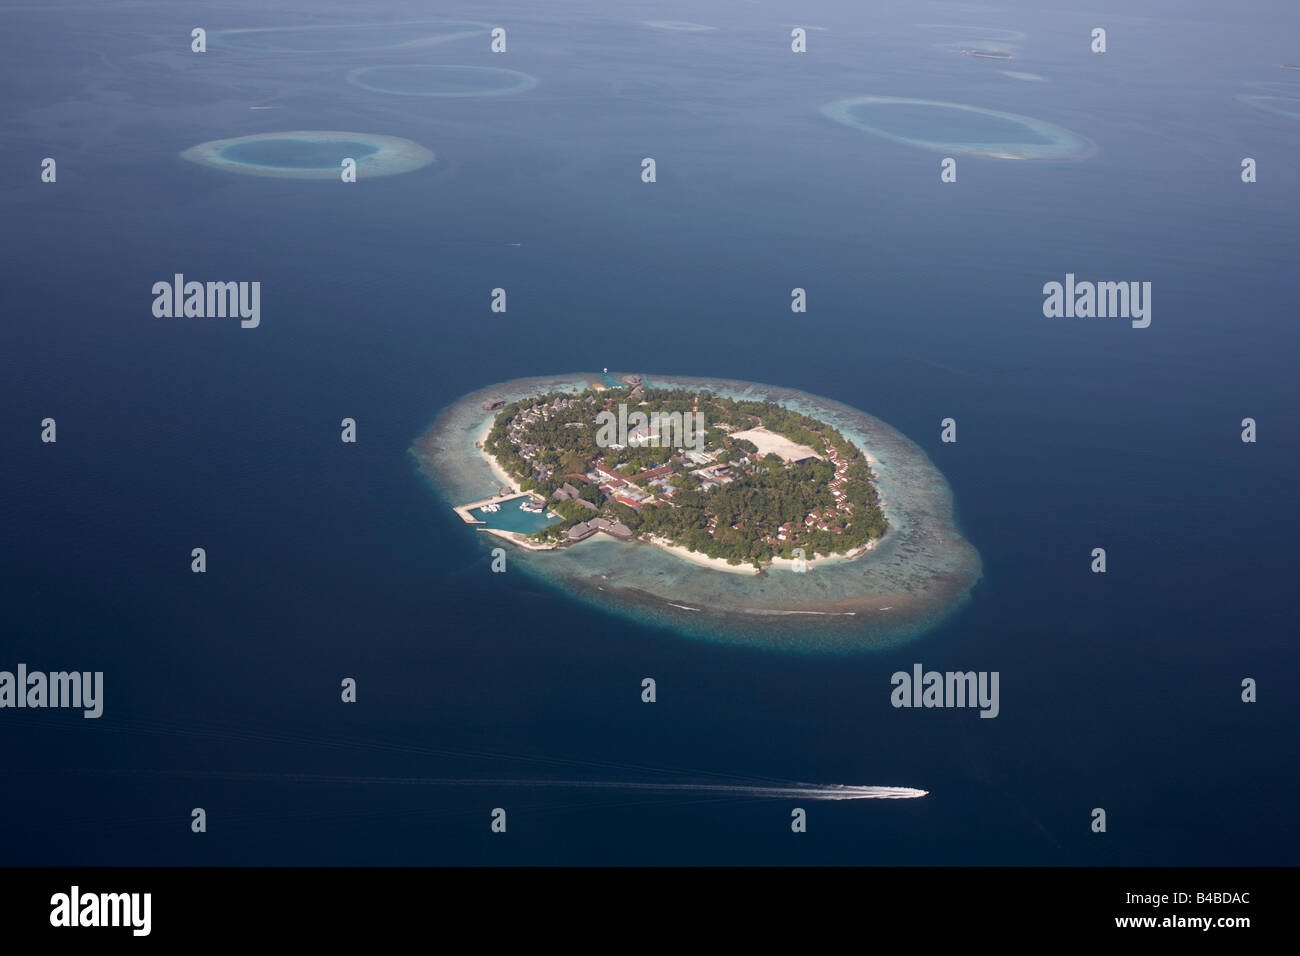 Aerial view of a passing boat and one of 1,192 inhabited and deserted coral islands in the Islamic Republic of Maldives Stock Photo